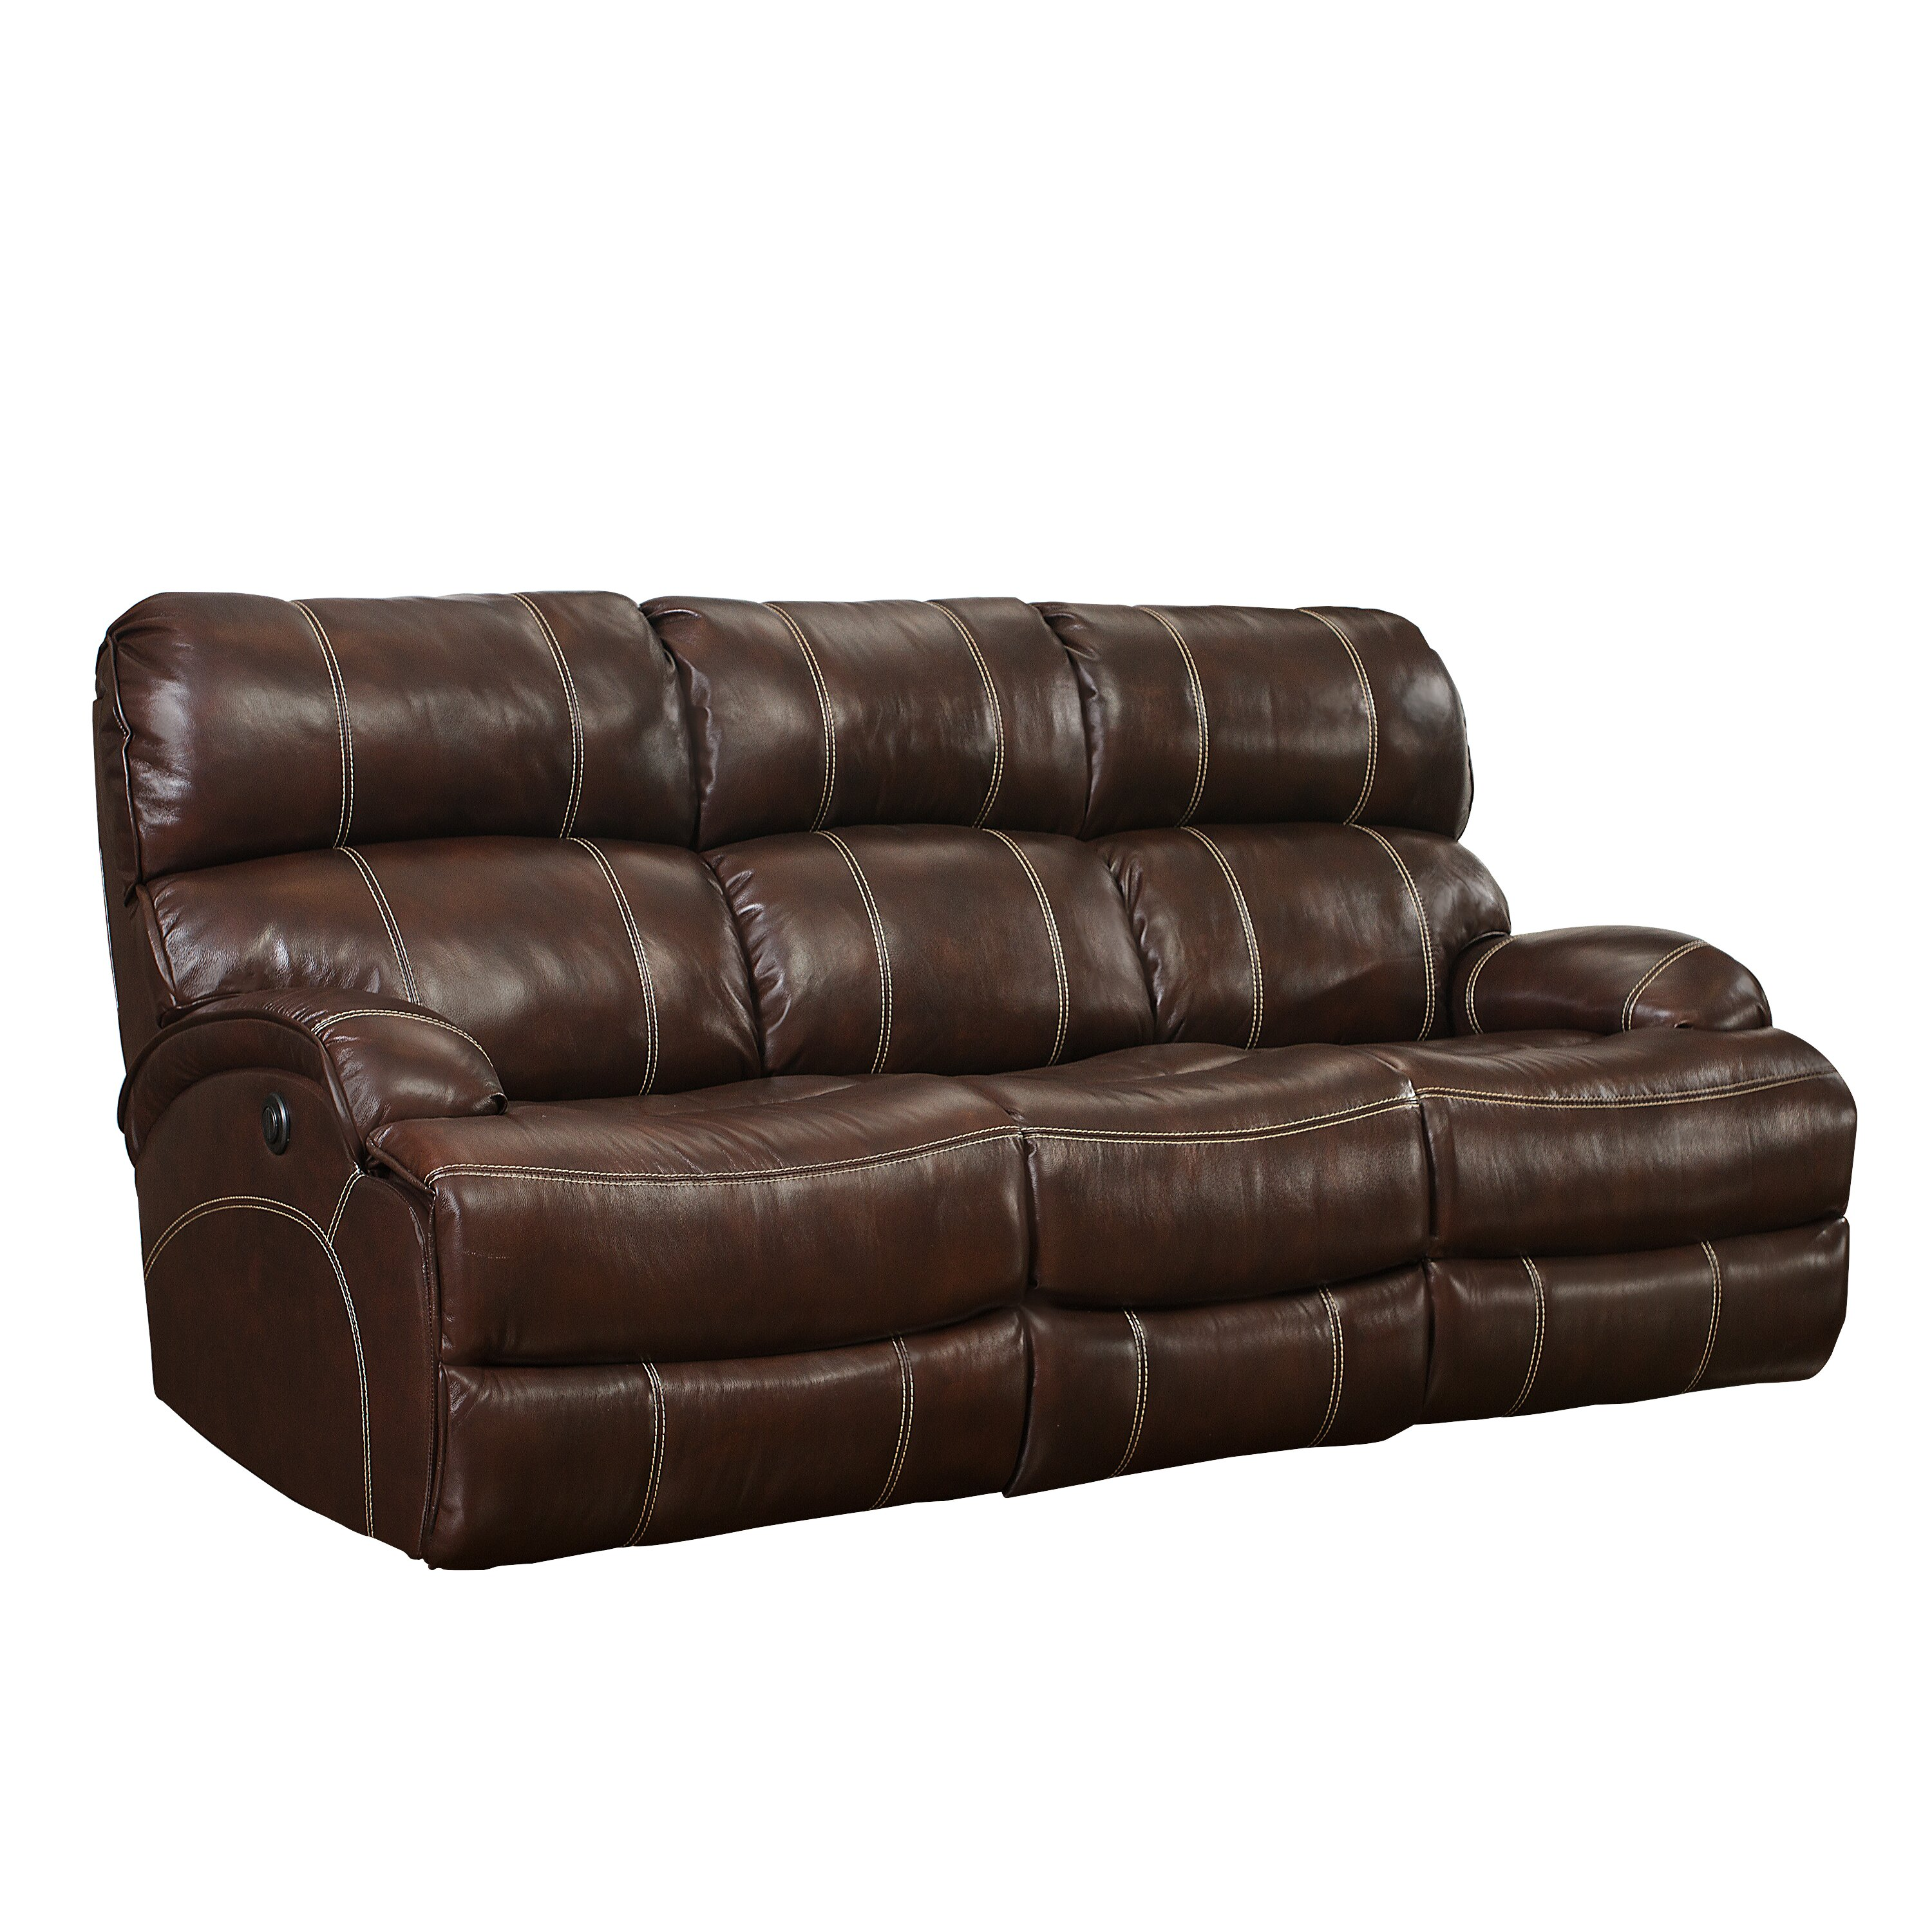 Barcalounger barcla casual comforts power leather sofas for Casual couch